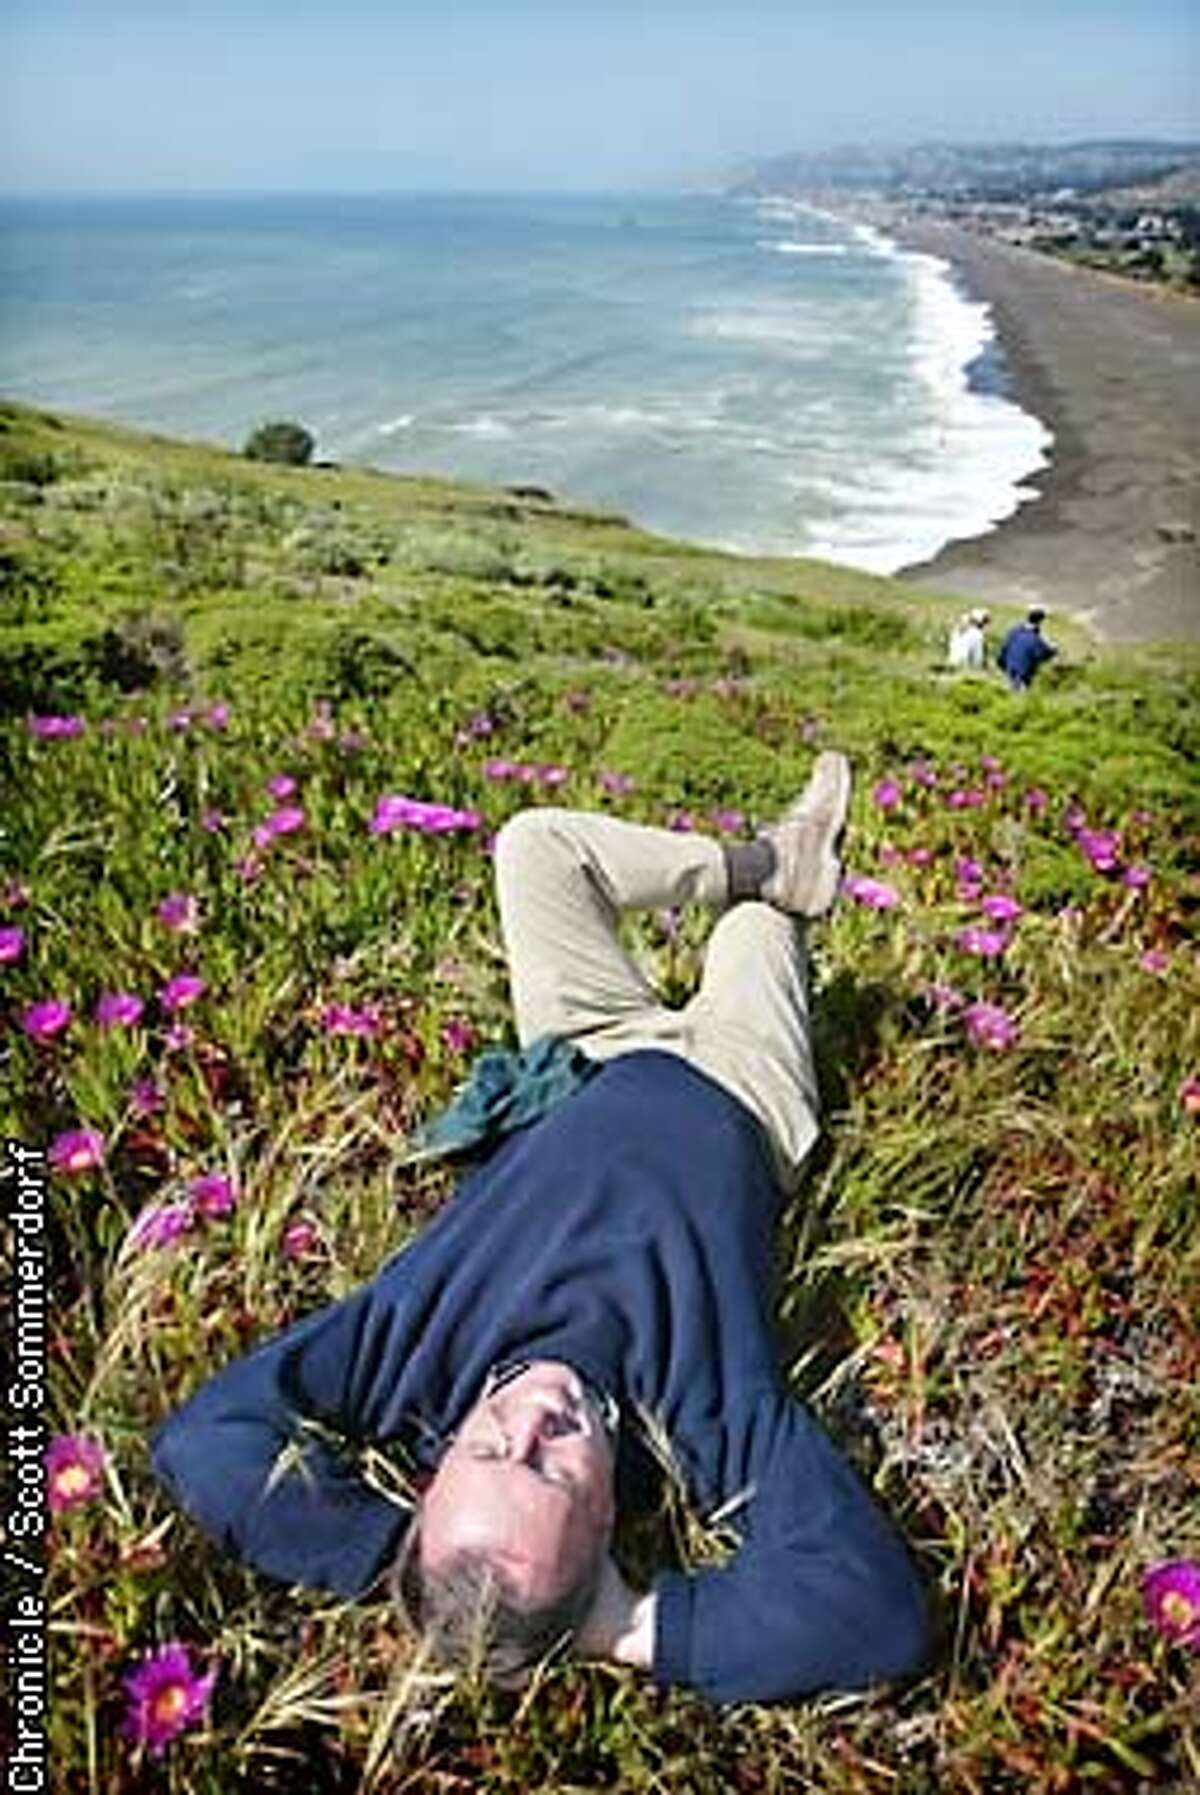 John reynolds, retiring head of the Nationasl Parks Department, relaxes on a hillside at the newest addition to the GGNRA - Mori Point near Pacifica. He says he is looking forward to more of these sorts of relaxing moments during his retirement. (SF CHRONICLE PHOTO BY SCOTT SOMMERDORF)